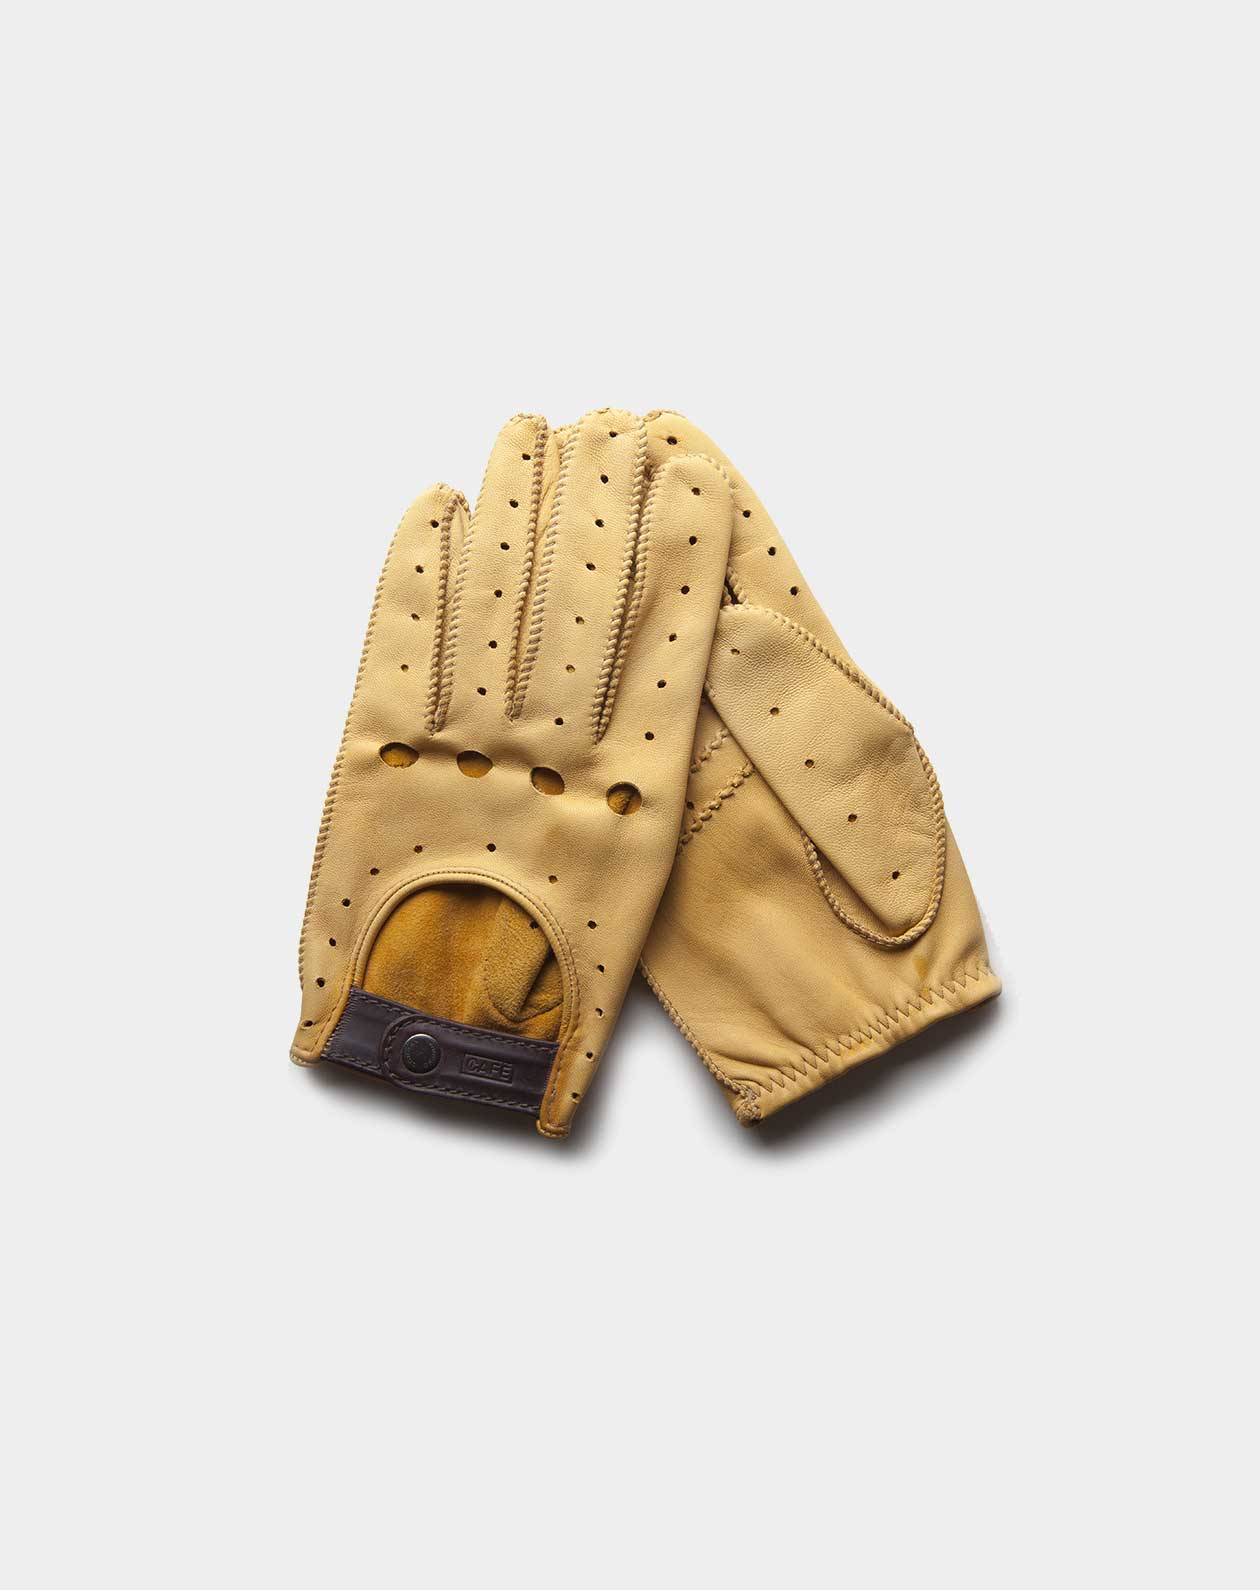 driving gloves yellow handcrafted in Spain